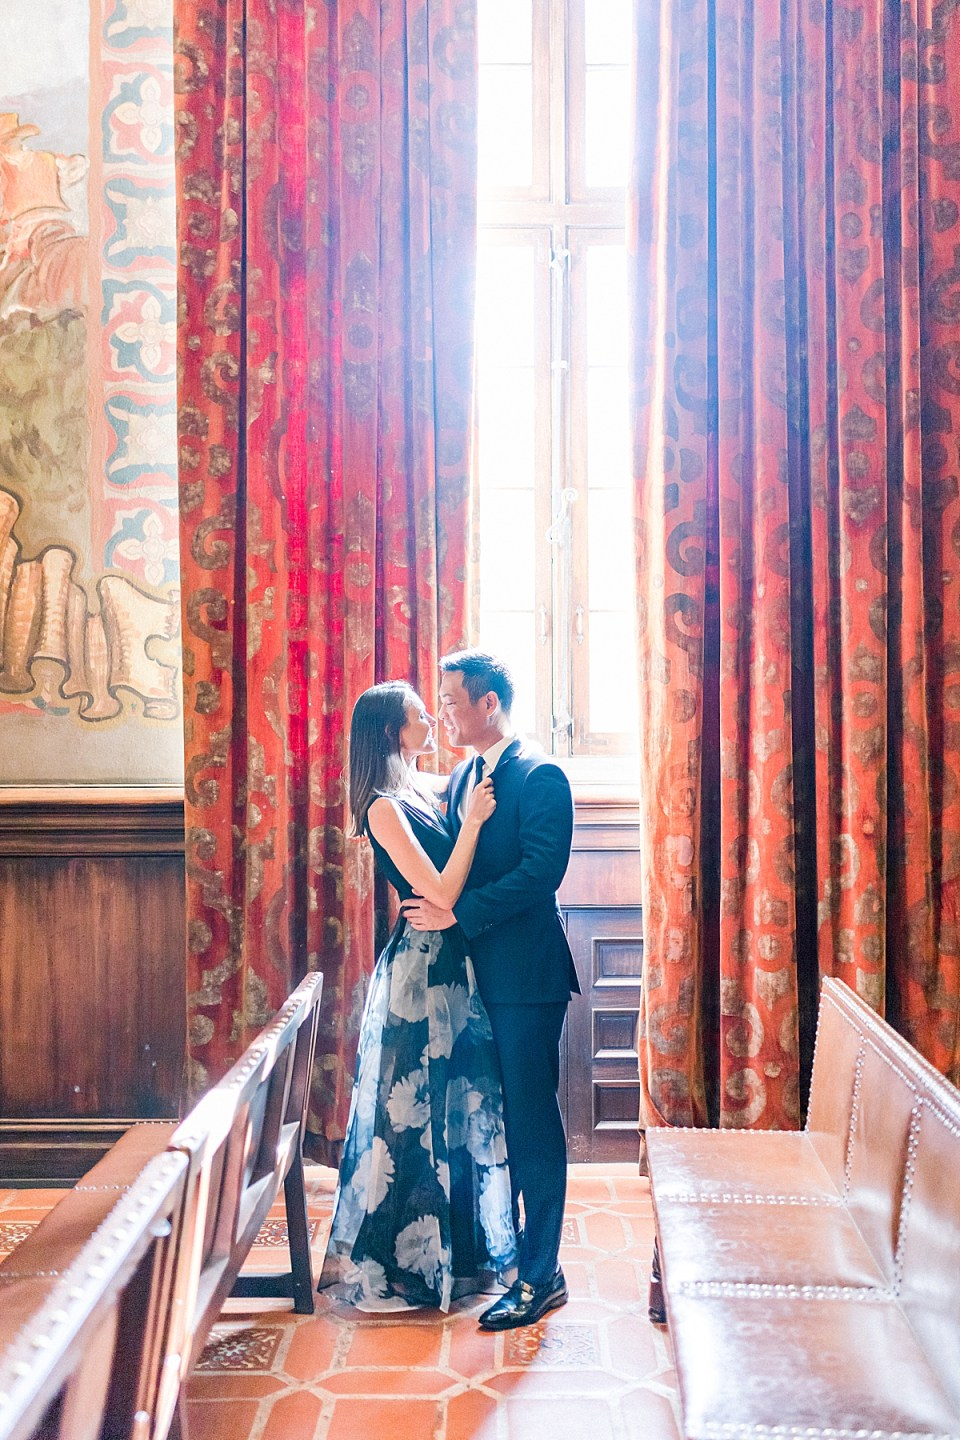 The couple smiling into each others eyes while standing in the light coming in from the window through the Mural Room at the Santa Barbara Courthouse.